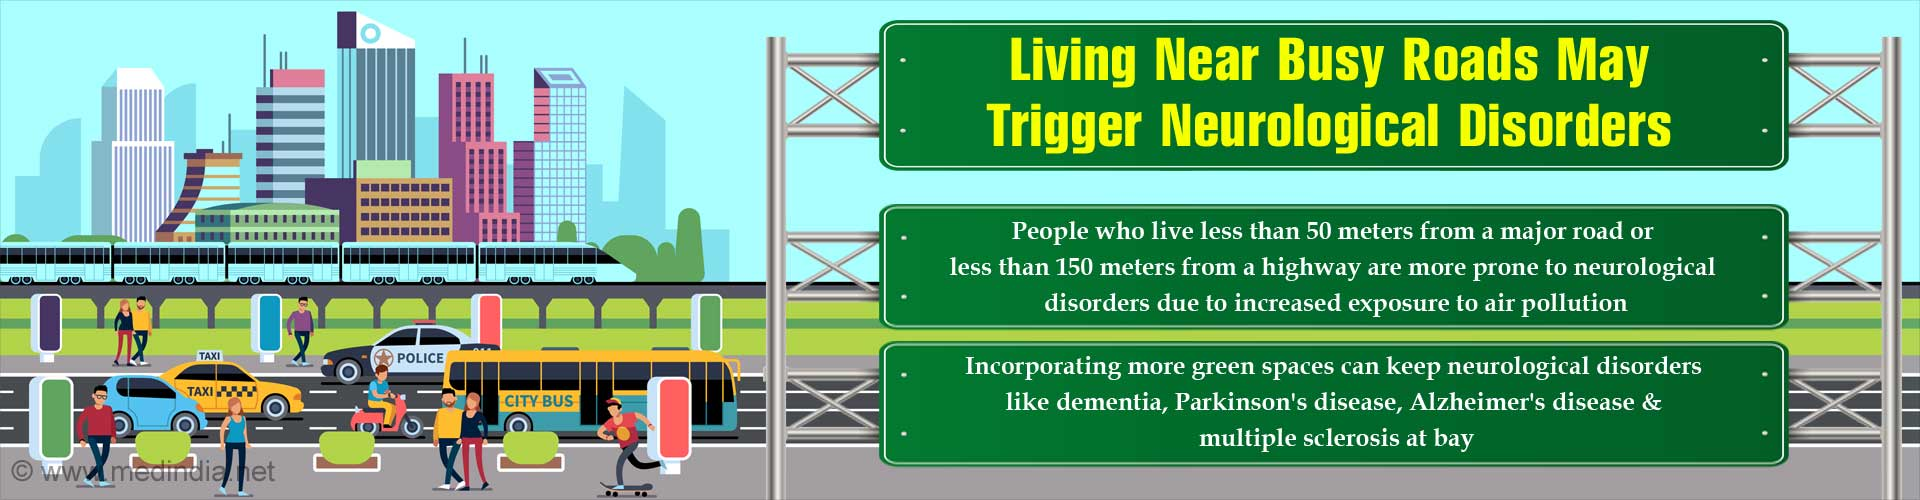 Living near busy roads may trigger neurological disorders. People who live less than 50 meters from a major road or less than 150 meters from a highway are more prone to neurological disorders due to increased exposure to air pollution. Incorporating more green spaces can keep neurological disorders like dementia, Parkinson's disease, Alzheimer's disease and multiple sclerosis at bay.